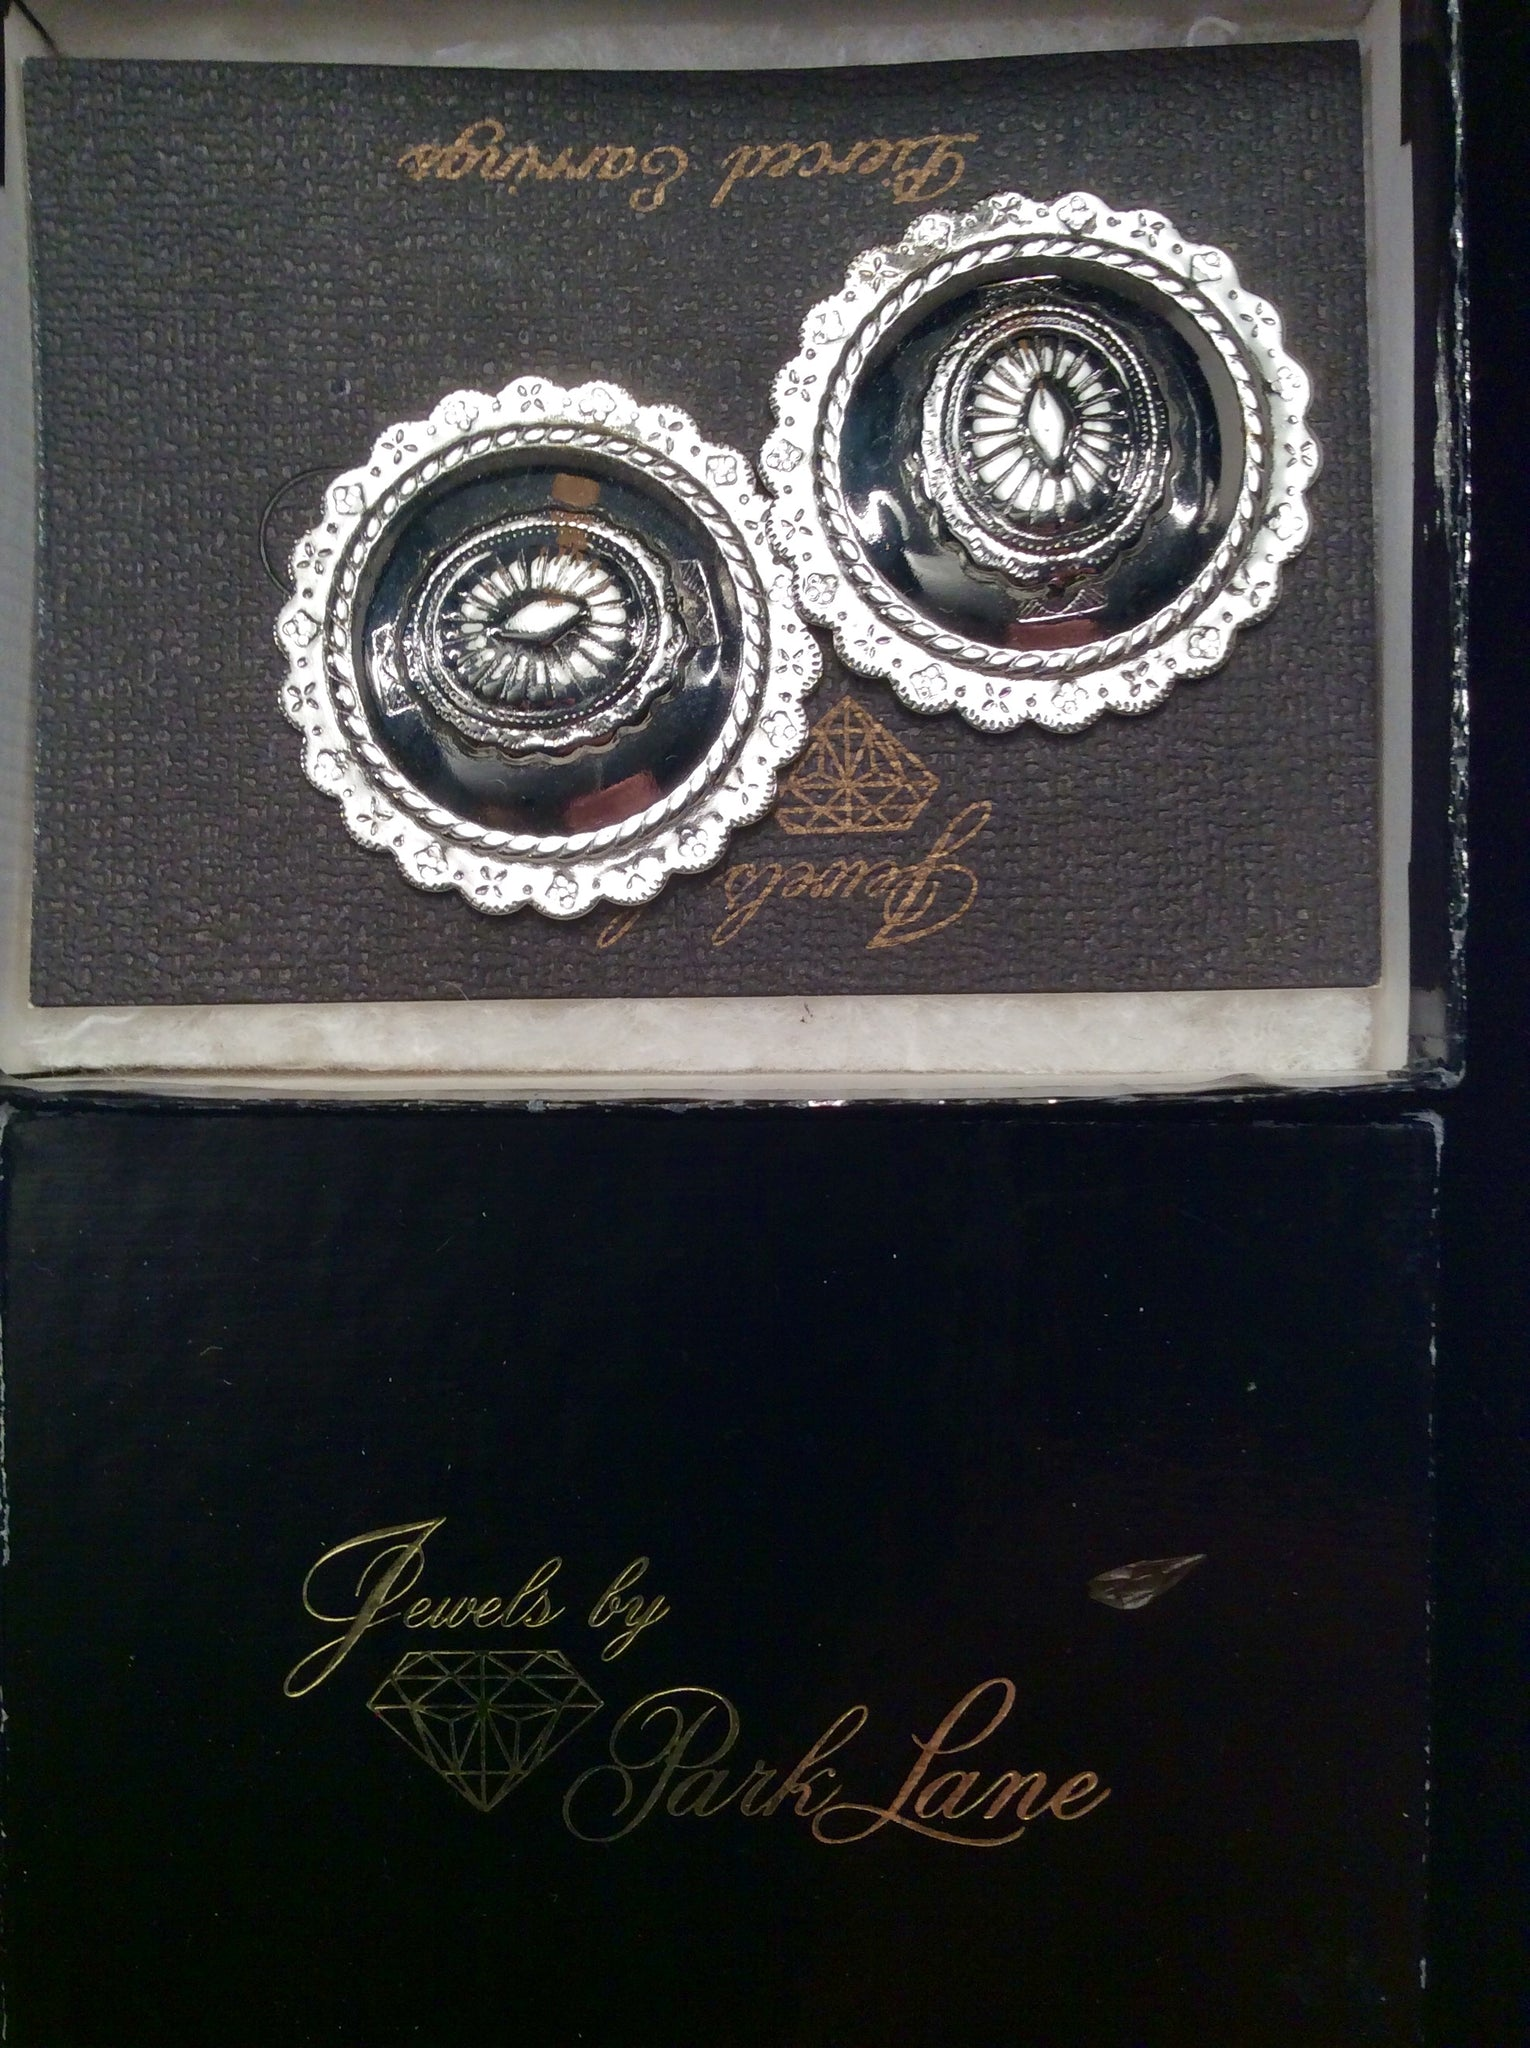 JEWELRY, JEWELS BY PARKLANE NEW VINTAGE FREE SHIPPING AND HANDLING NO RETURNS